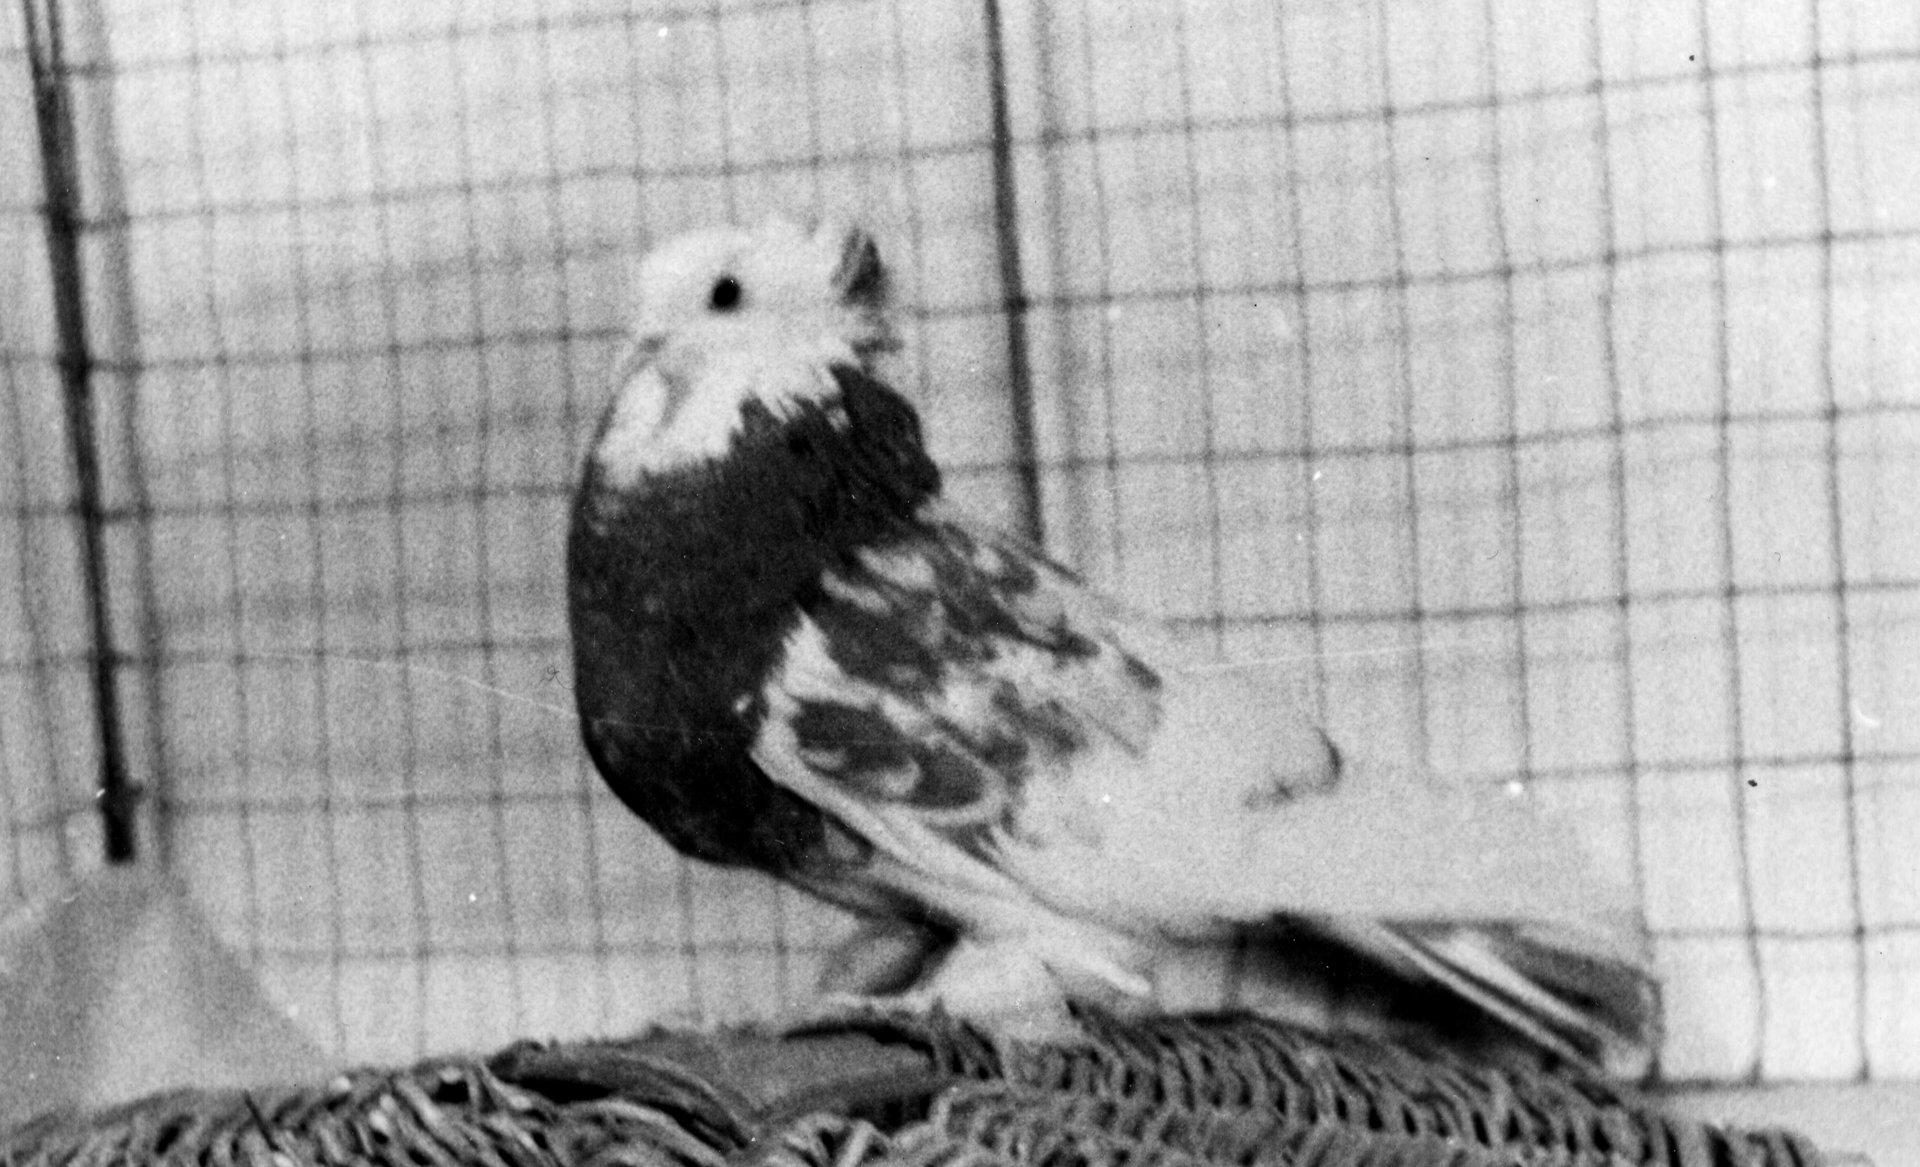 Petra Feriancová, Series Creator – From the Archive of O. Ferianc, New Breeds 1949-1952, 2008, (20/112)